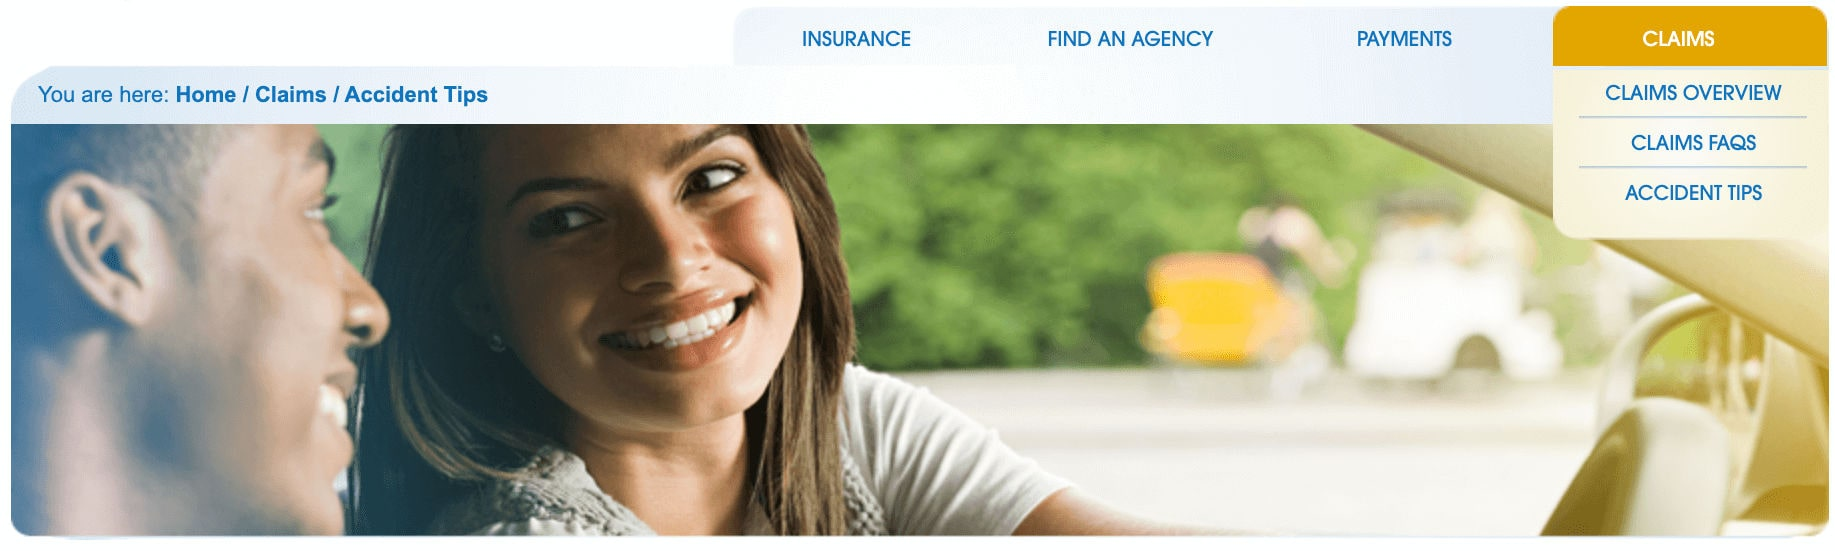 Safeway Insurance Online Claims Page